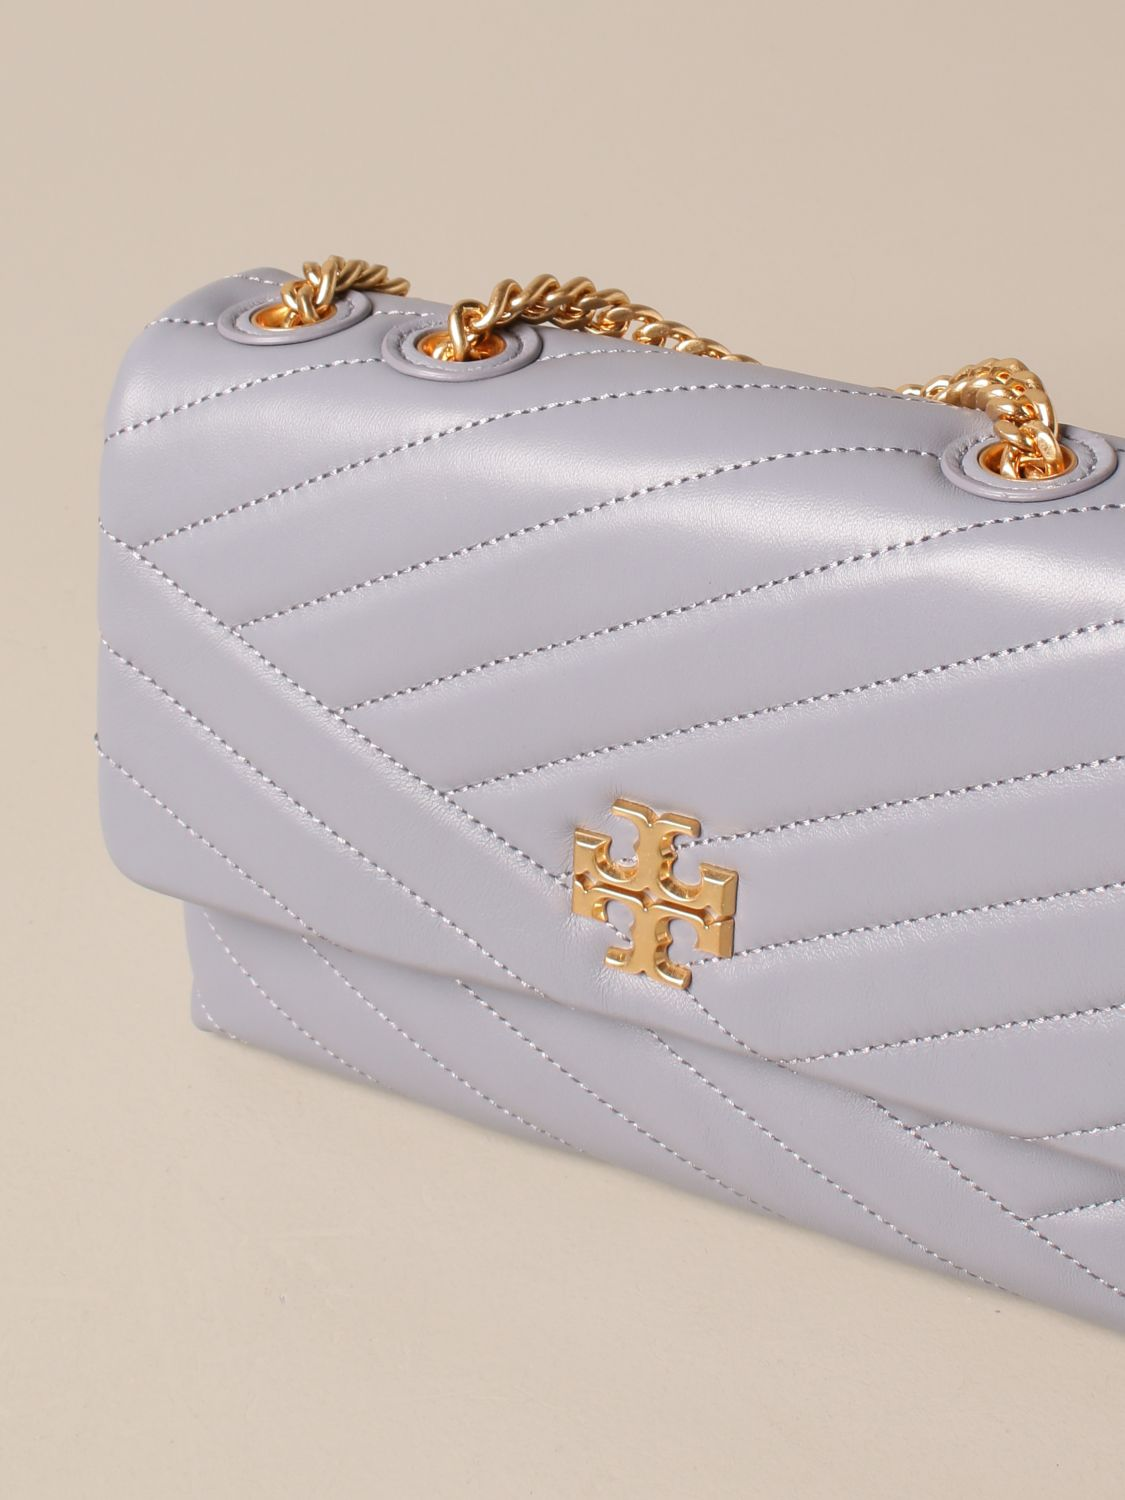 Crossbody bags Tory Burch: Kira Tory Burch bag in quilted leather dust 4